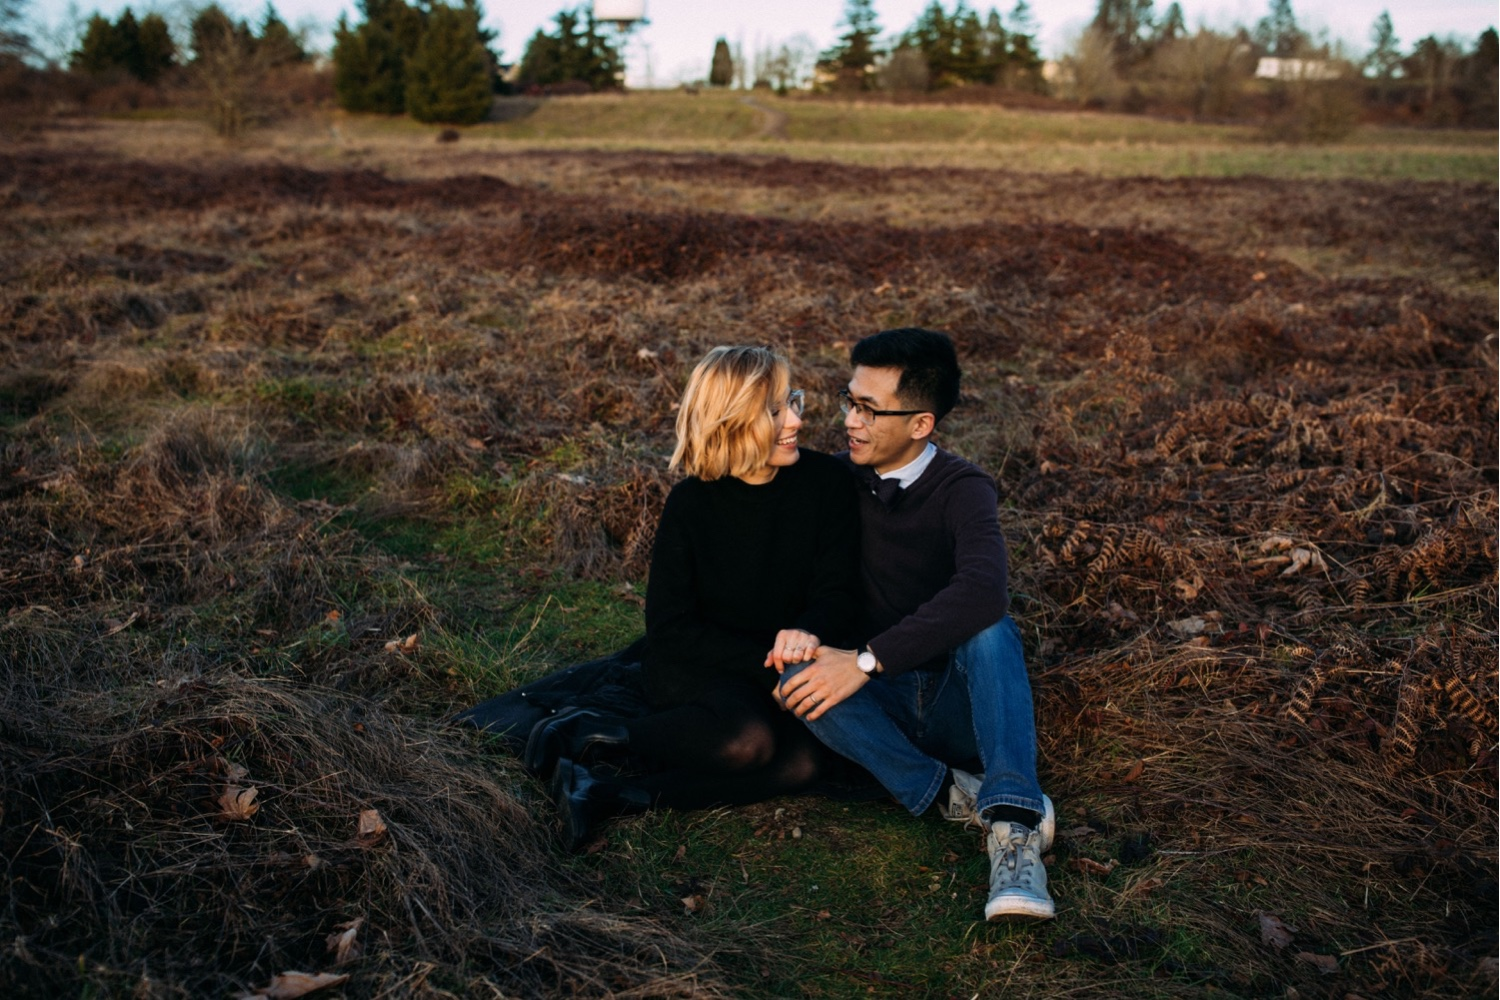 18_MC-74_sunsetproposal_adventure,_adventurous,_discoverypark_zoe_elopement_elopementphotographer_zoeburchardstudio_seattlebride_sunset_burchard_proposal,_seattle_photographer.jpg